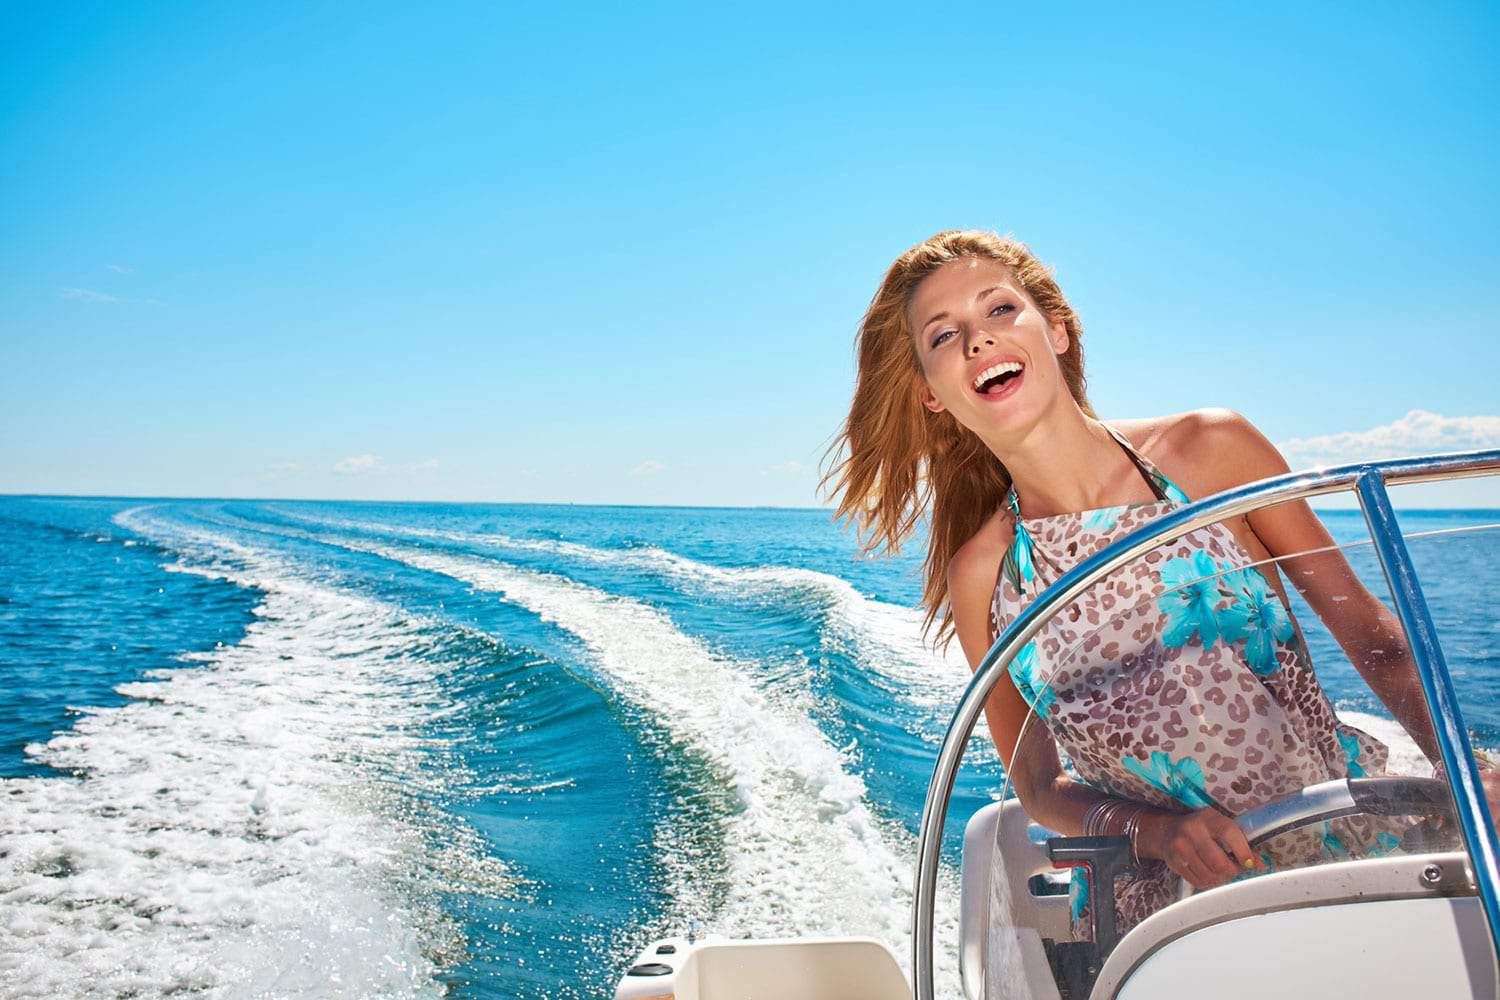 Top 5 Boating Tips for Beginners